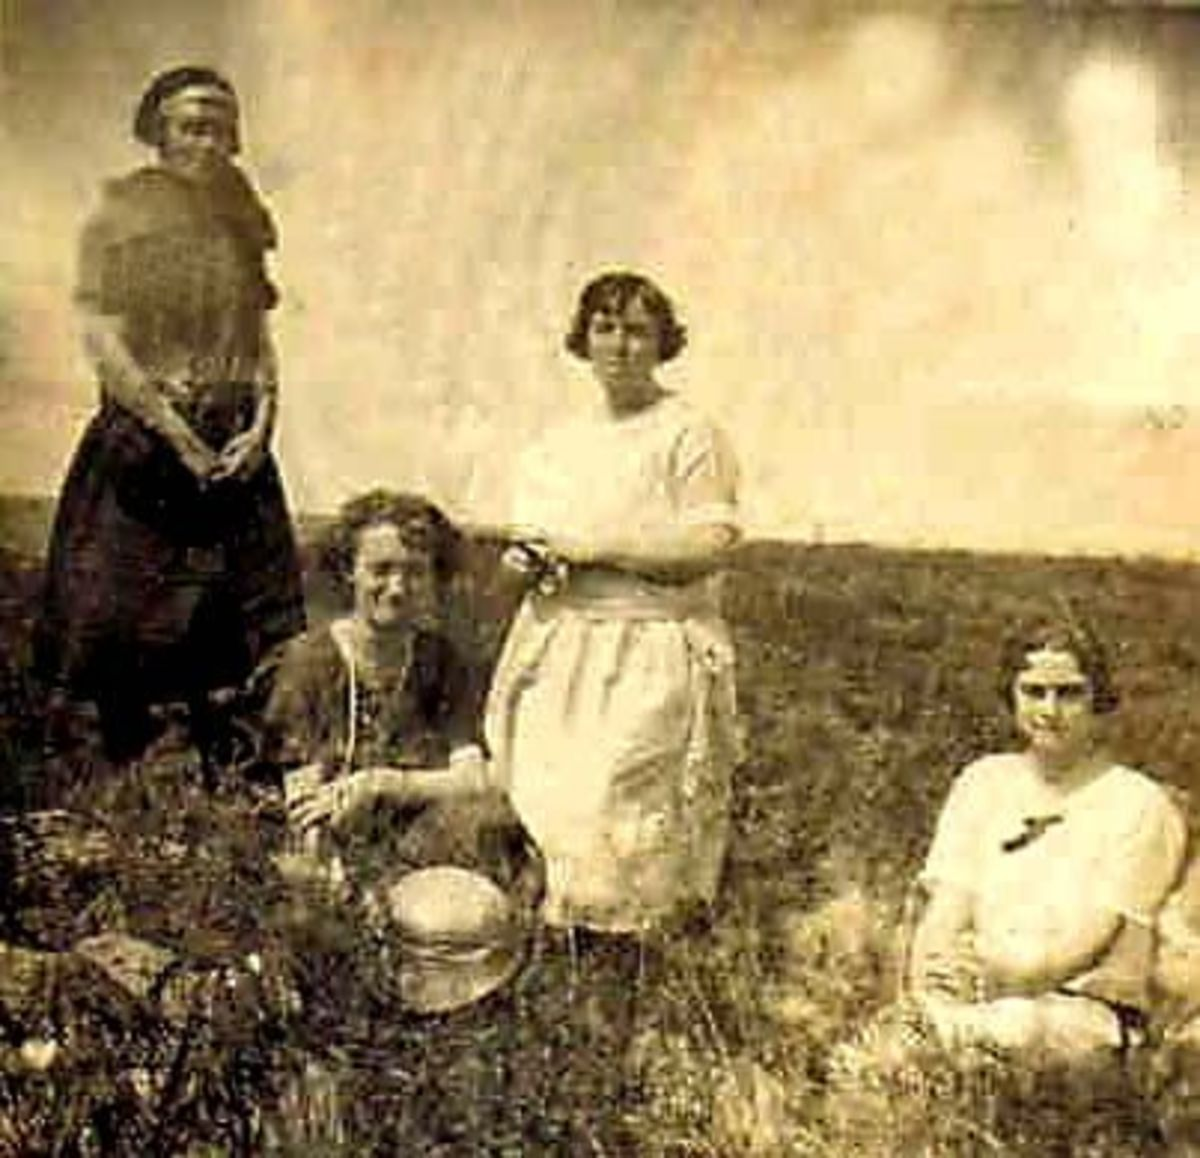 The McGhees and Vinings having a picnic (early 1900s).